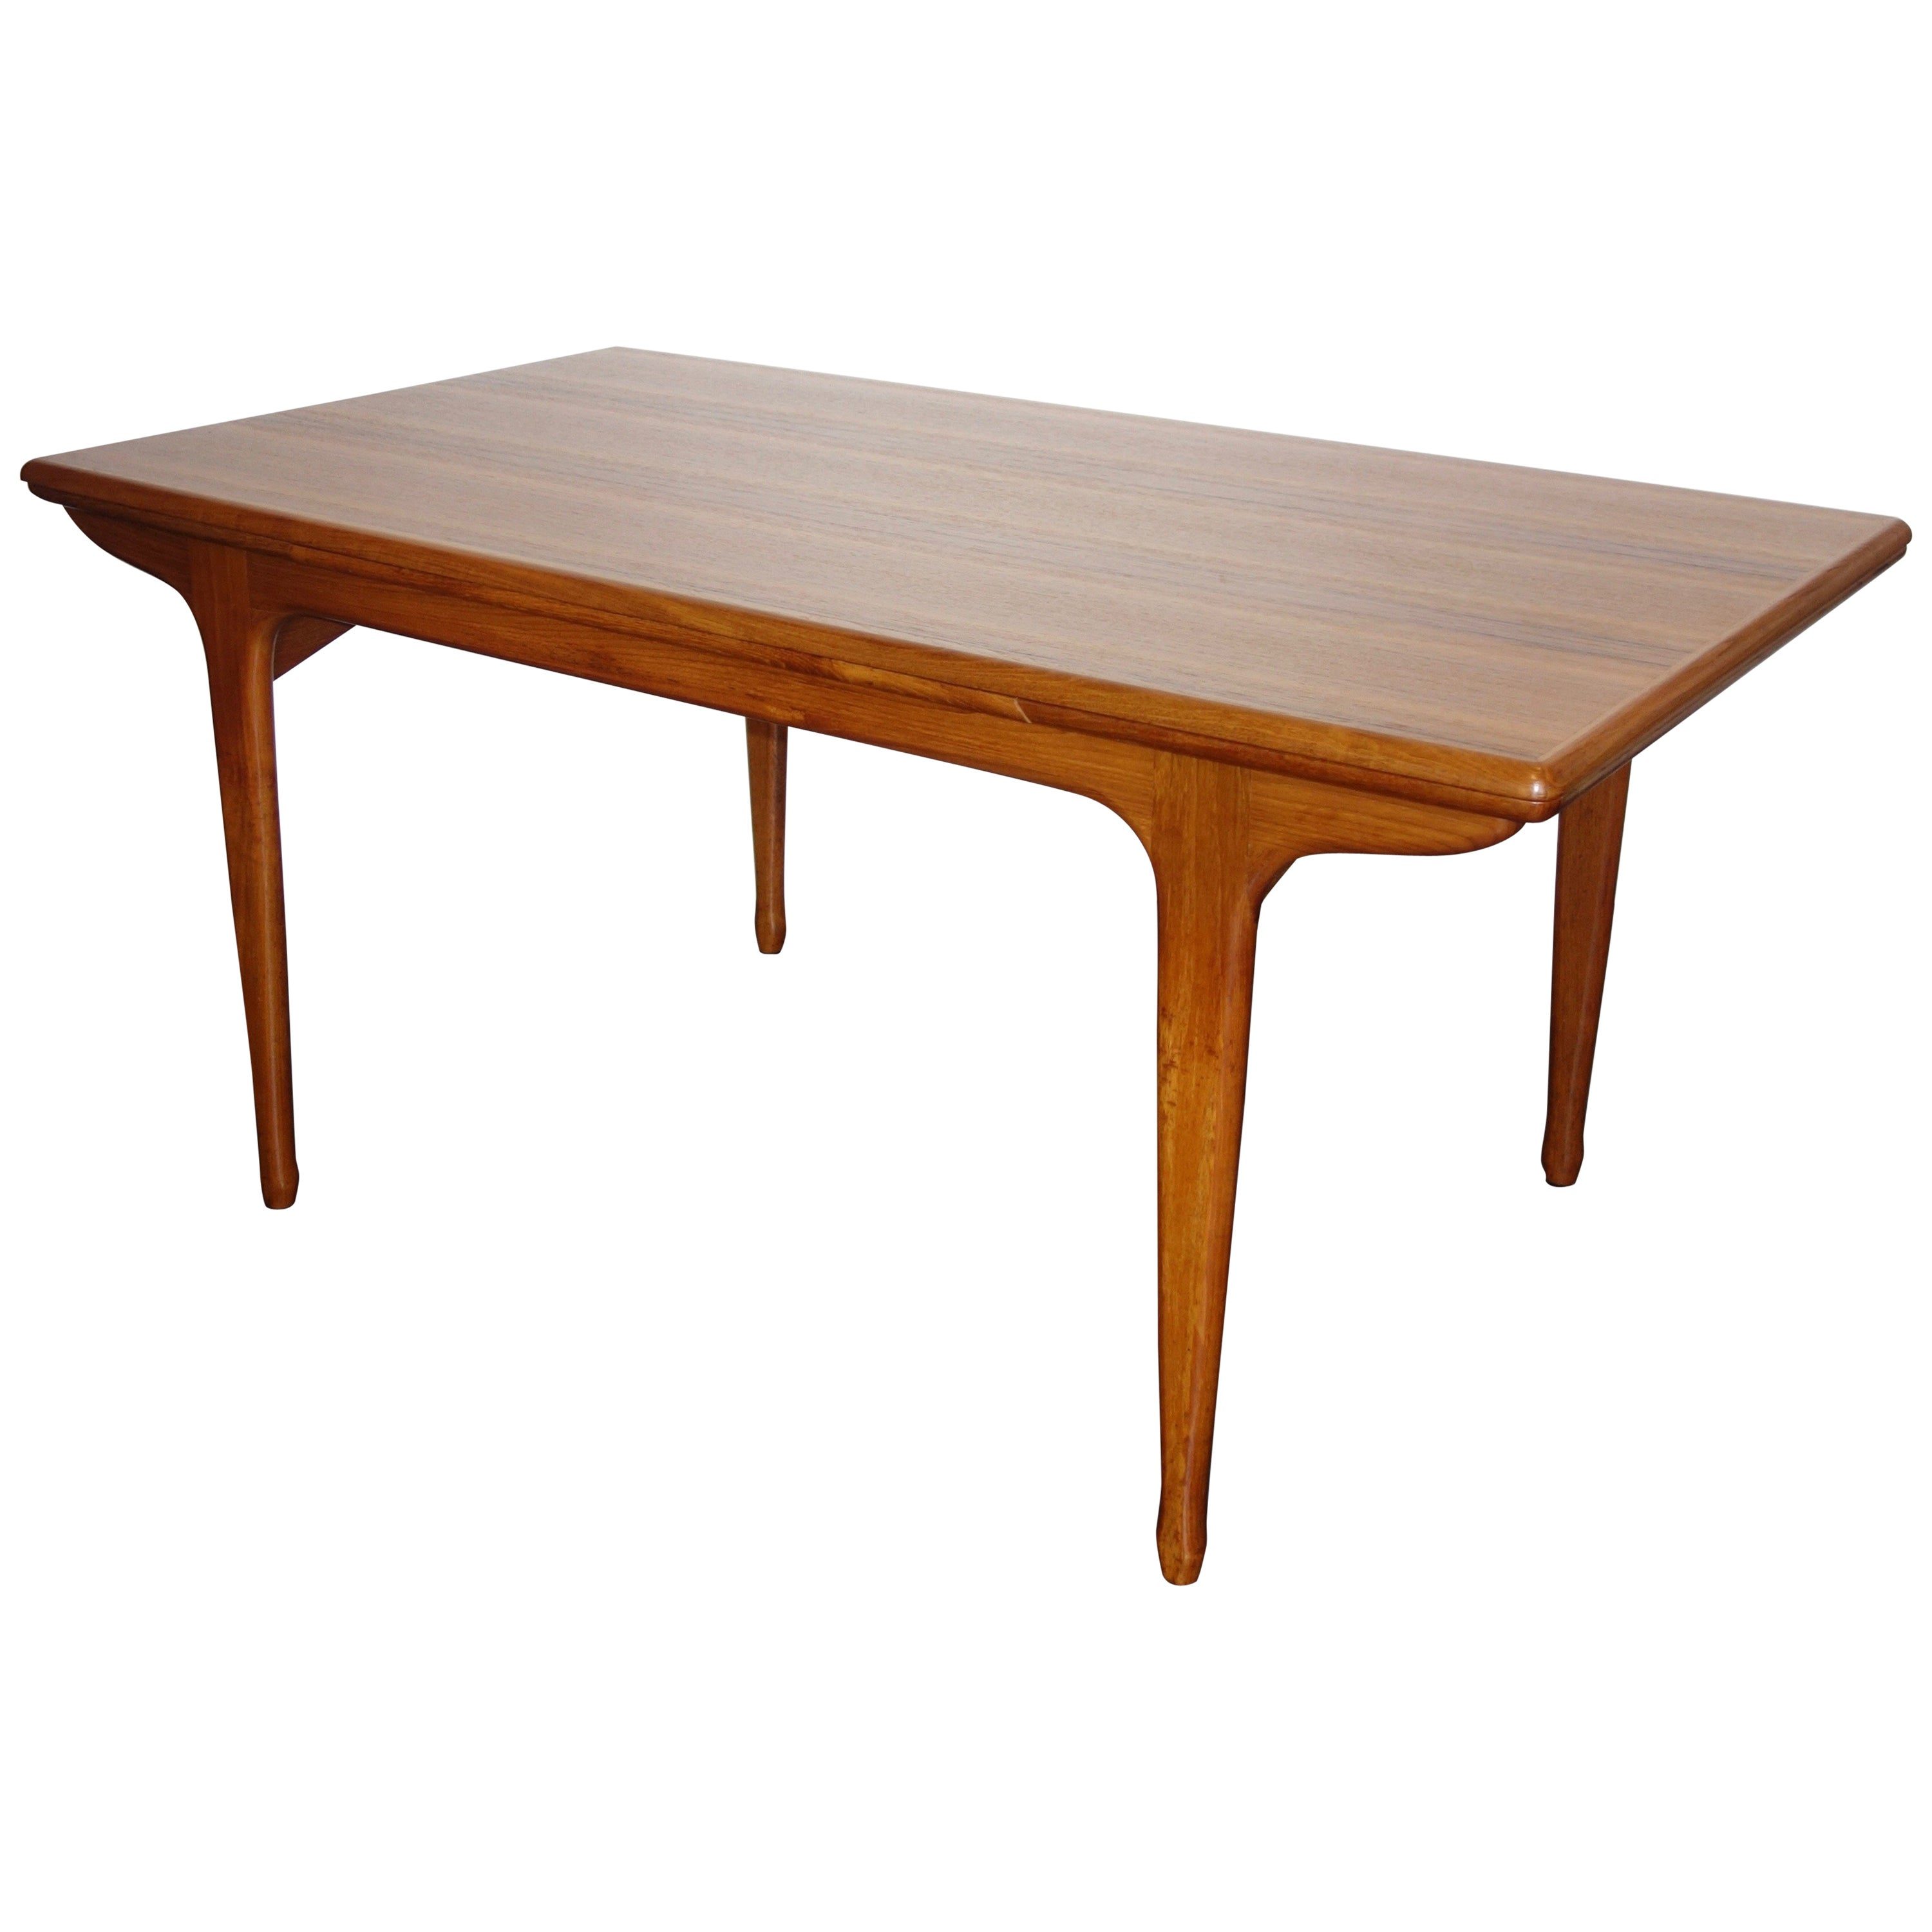 Meubles Basic Line France French Expendable Dining Table By Meubles Tv Tricoire Vecchione 1960s